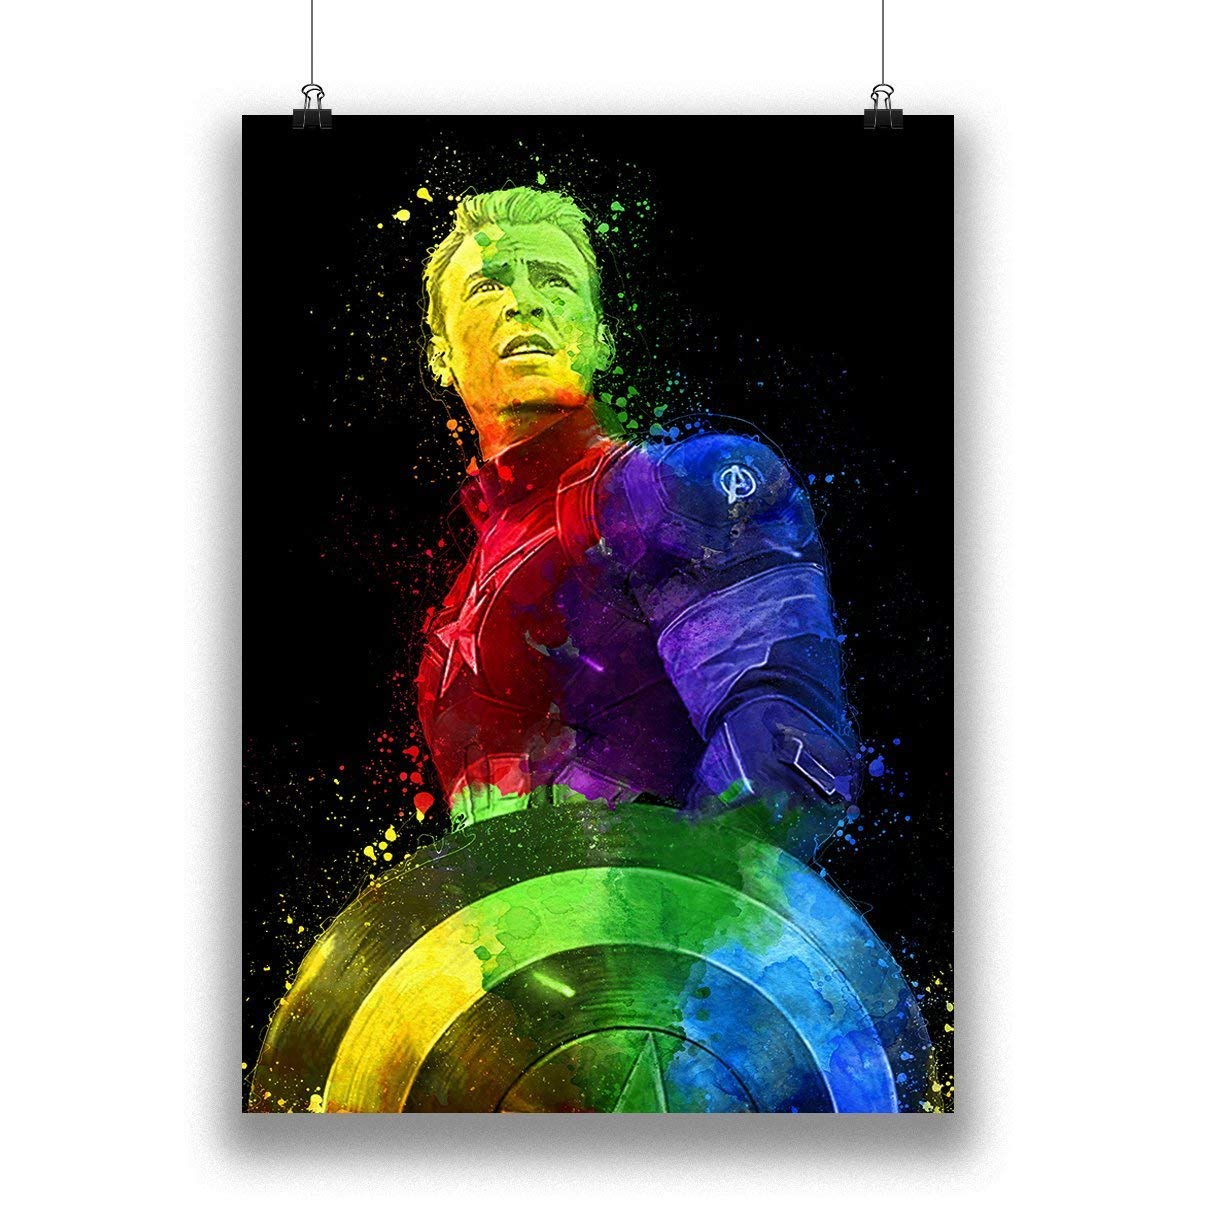 Captain America Marvel Superhero Abstract Colourful Painting Home Decor Bedroom Game room Gift Ideas The Avengers Infinity Wars Movie 100/% Cotton Paper Poster